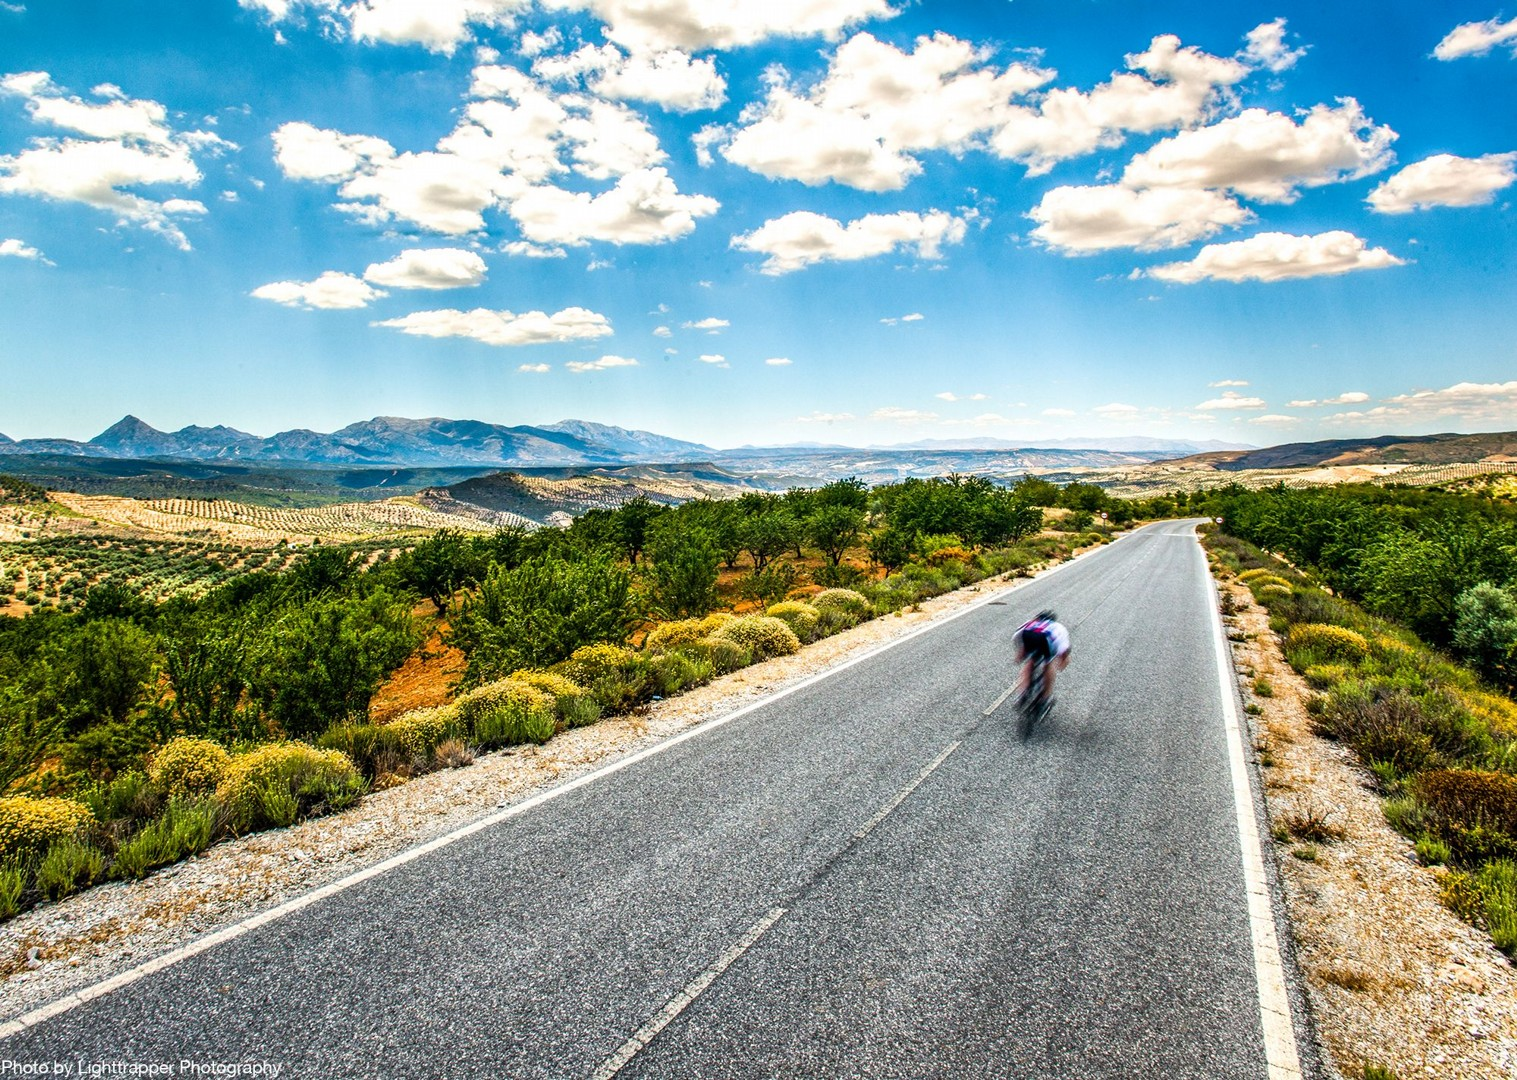 spanish-cycling-saddle-skedaddle-guided-holidays-north-to-south-16-days.jpg - Spain - Basque Country to Andalucia - North to South (16 Days) - Guided Road Cycling Holiday - Road Cycling